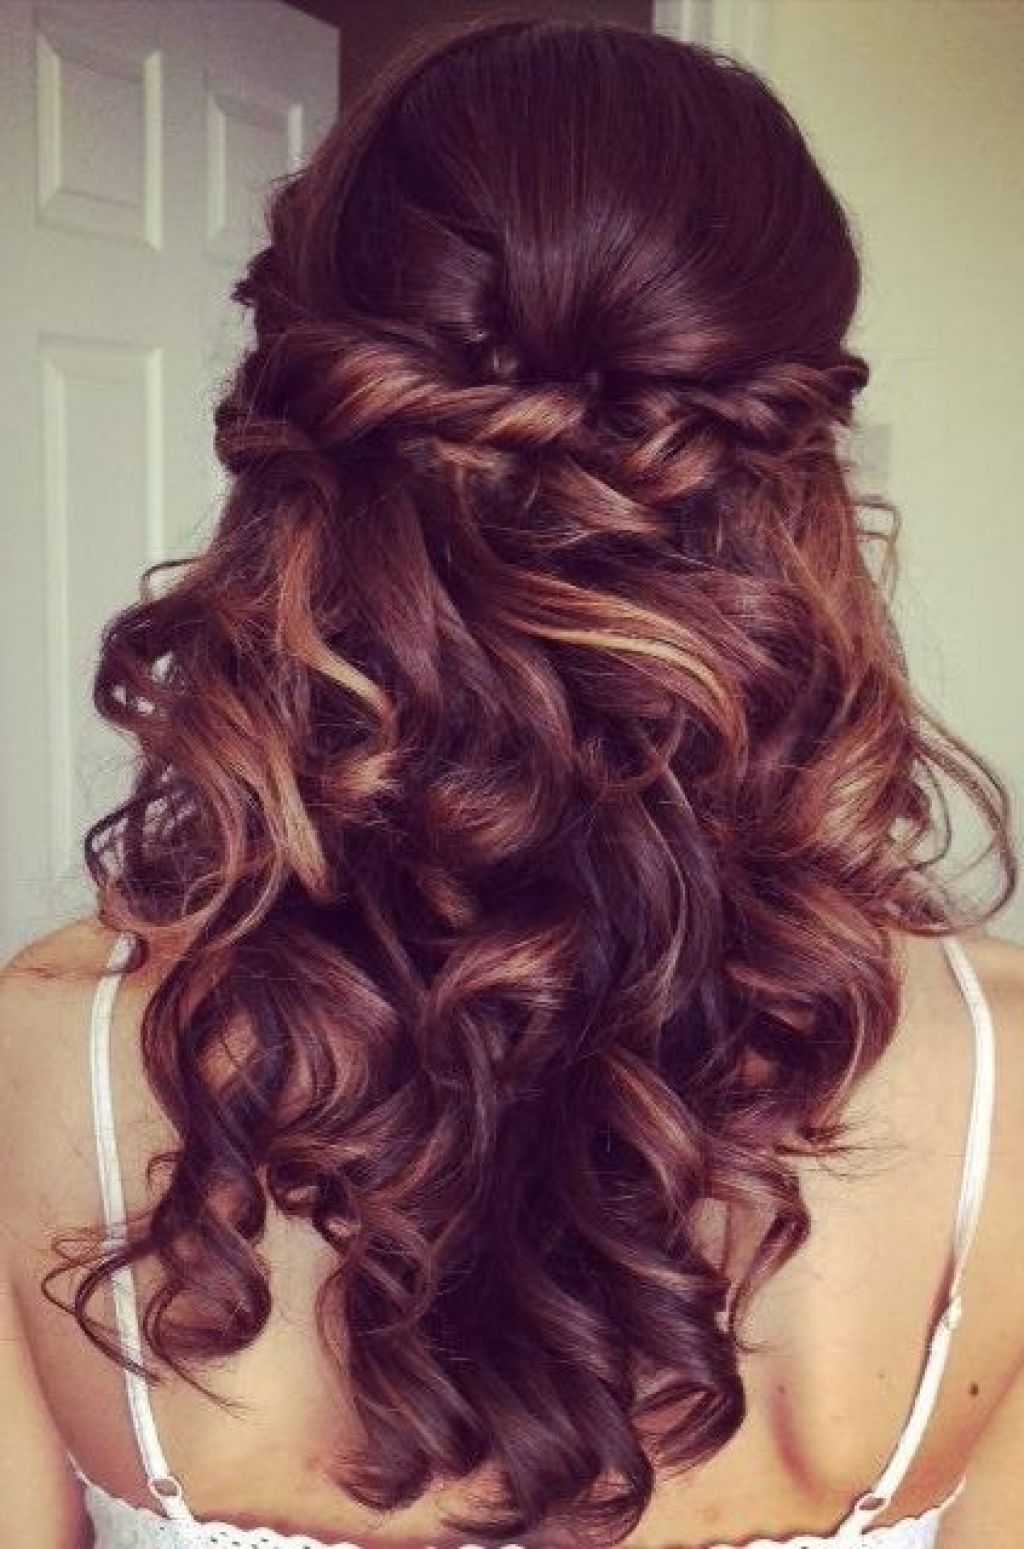 stylish curly homecoming hairstyles my passions pinterest